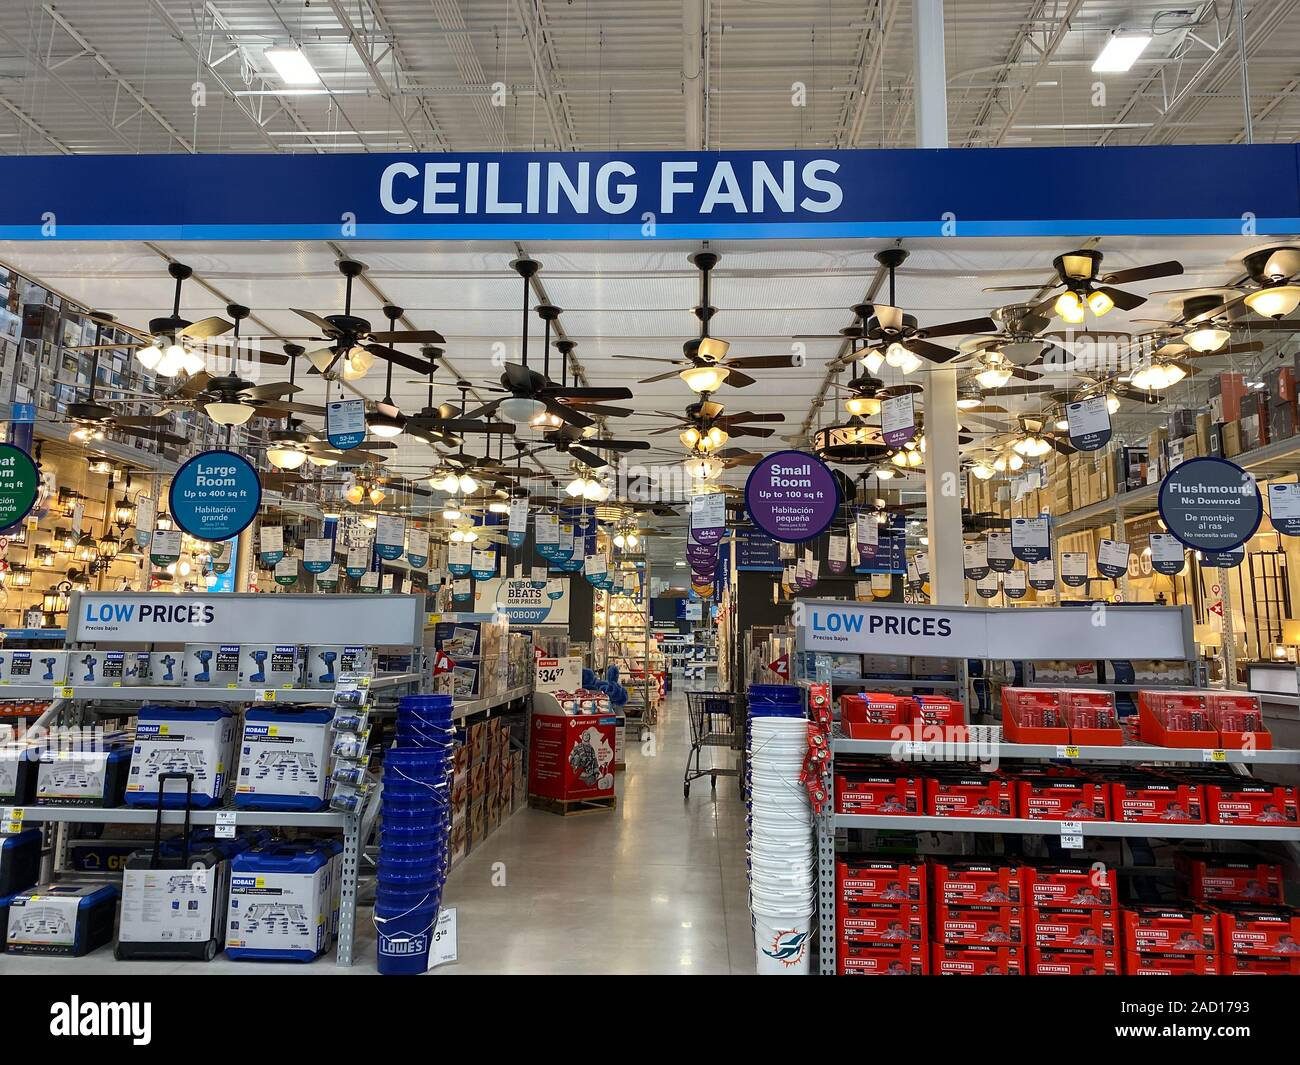 Ceiling Fans High Resolution Stock Photography And Images Alamy